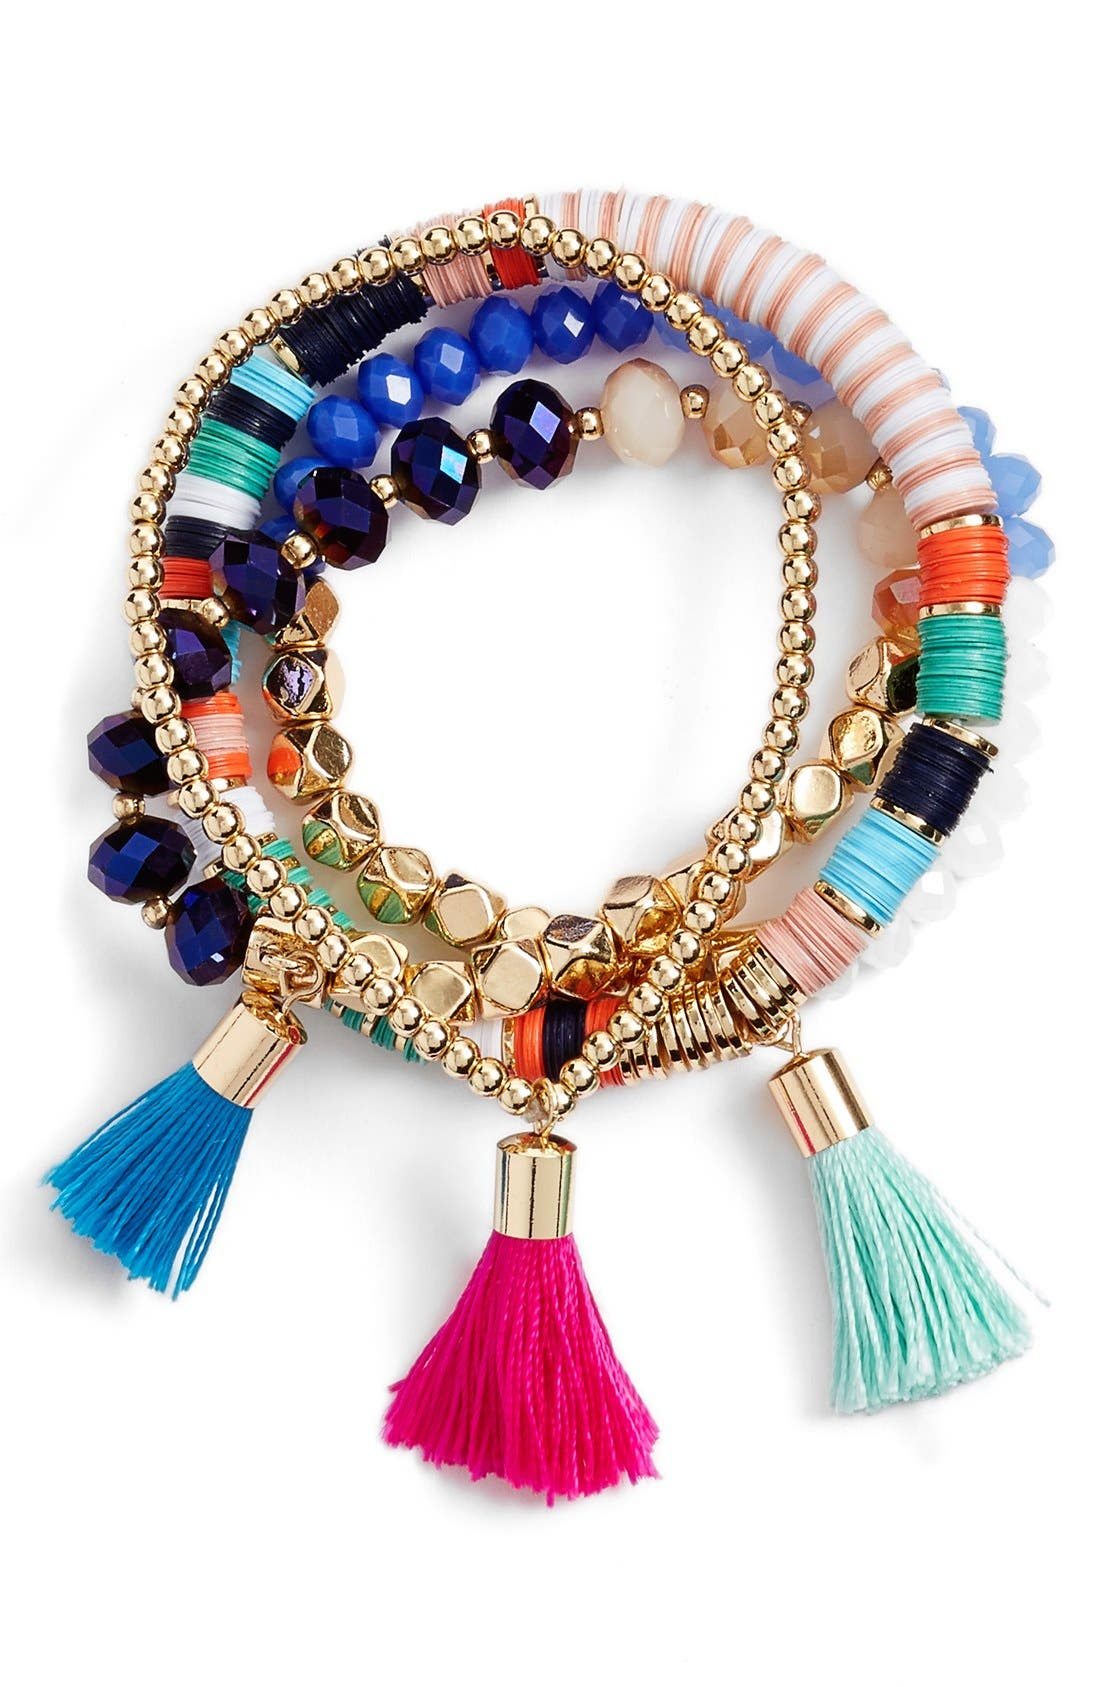 Main Image - BaubleBar 'Antiqua' Beaded Stretch Bracelets (Set of 4)